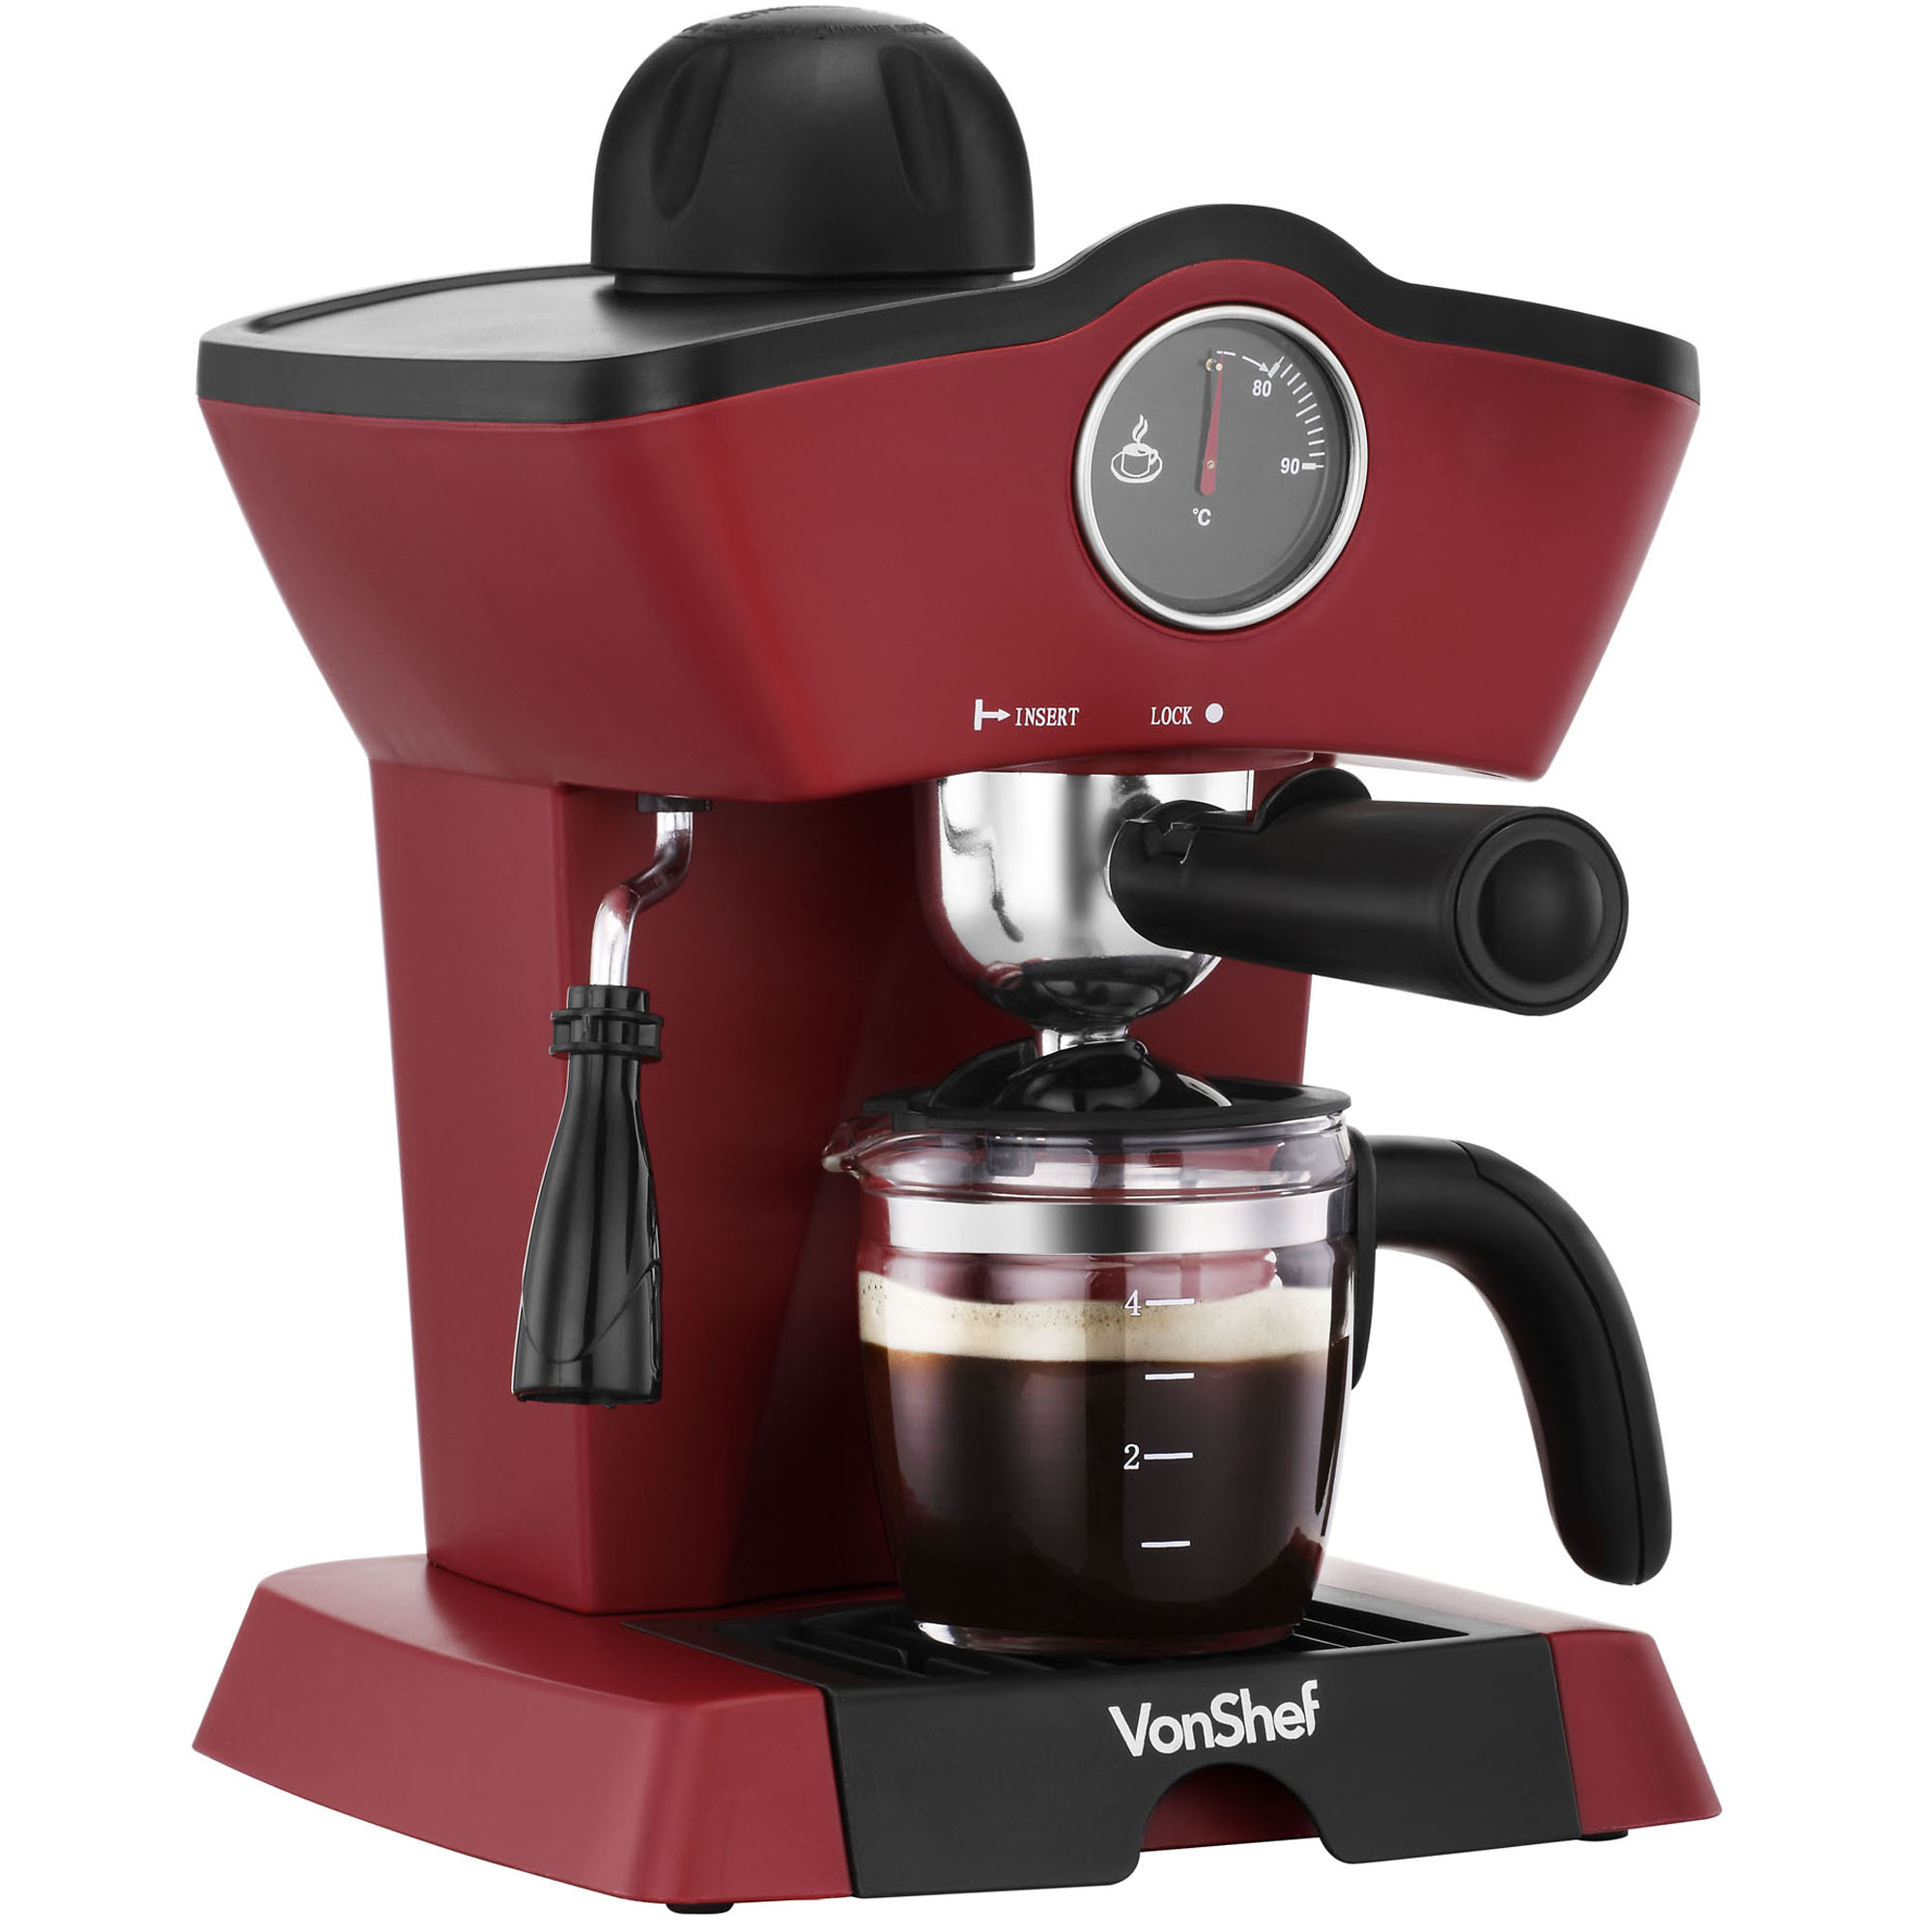 vonshef 4 bar espresso cappuccino latte barista coffee maker machine red black ebay. Black Bedroom Furniture Sets. Home Design Ideas